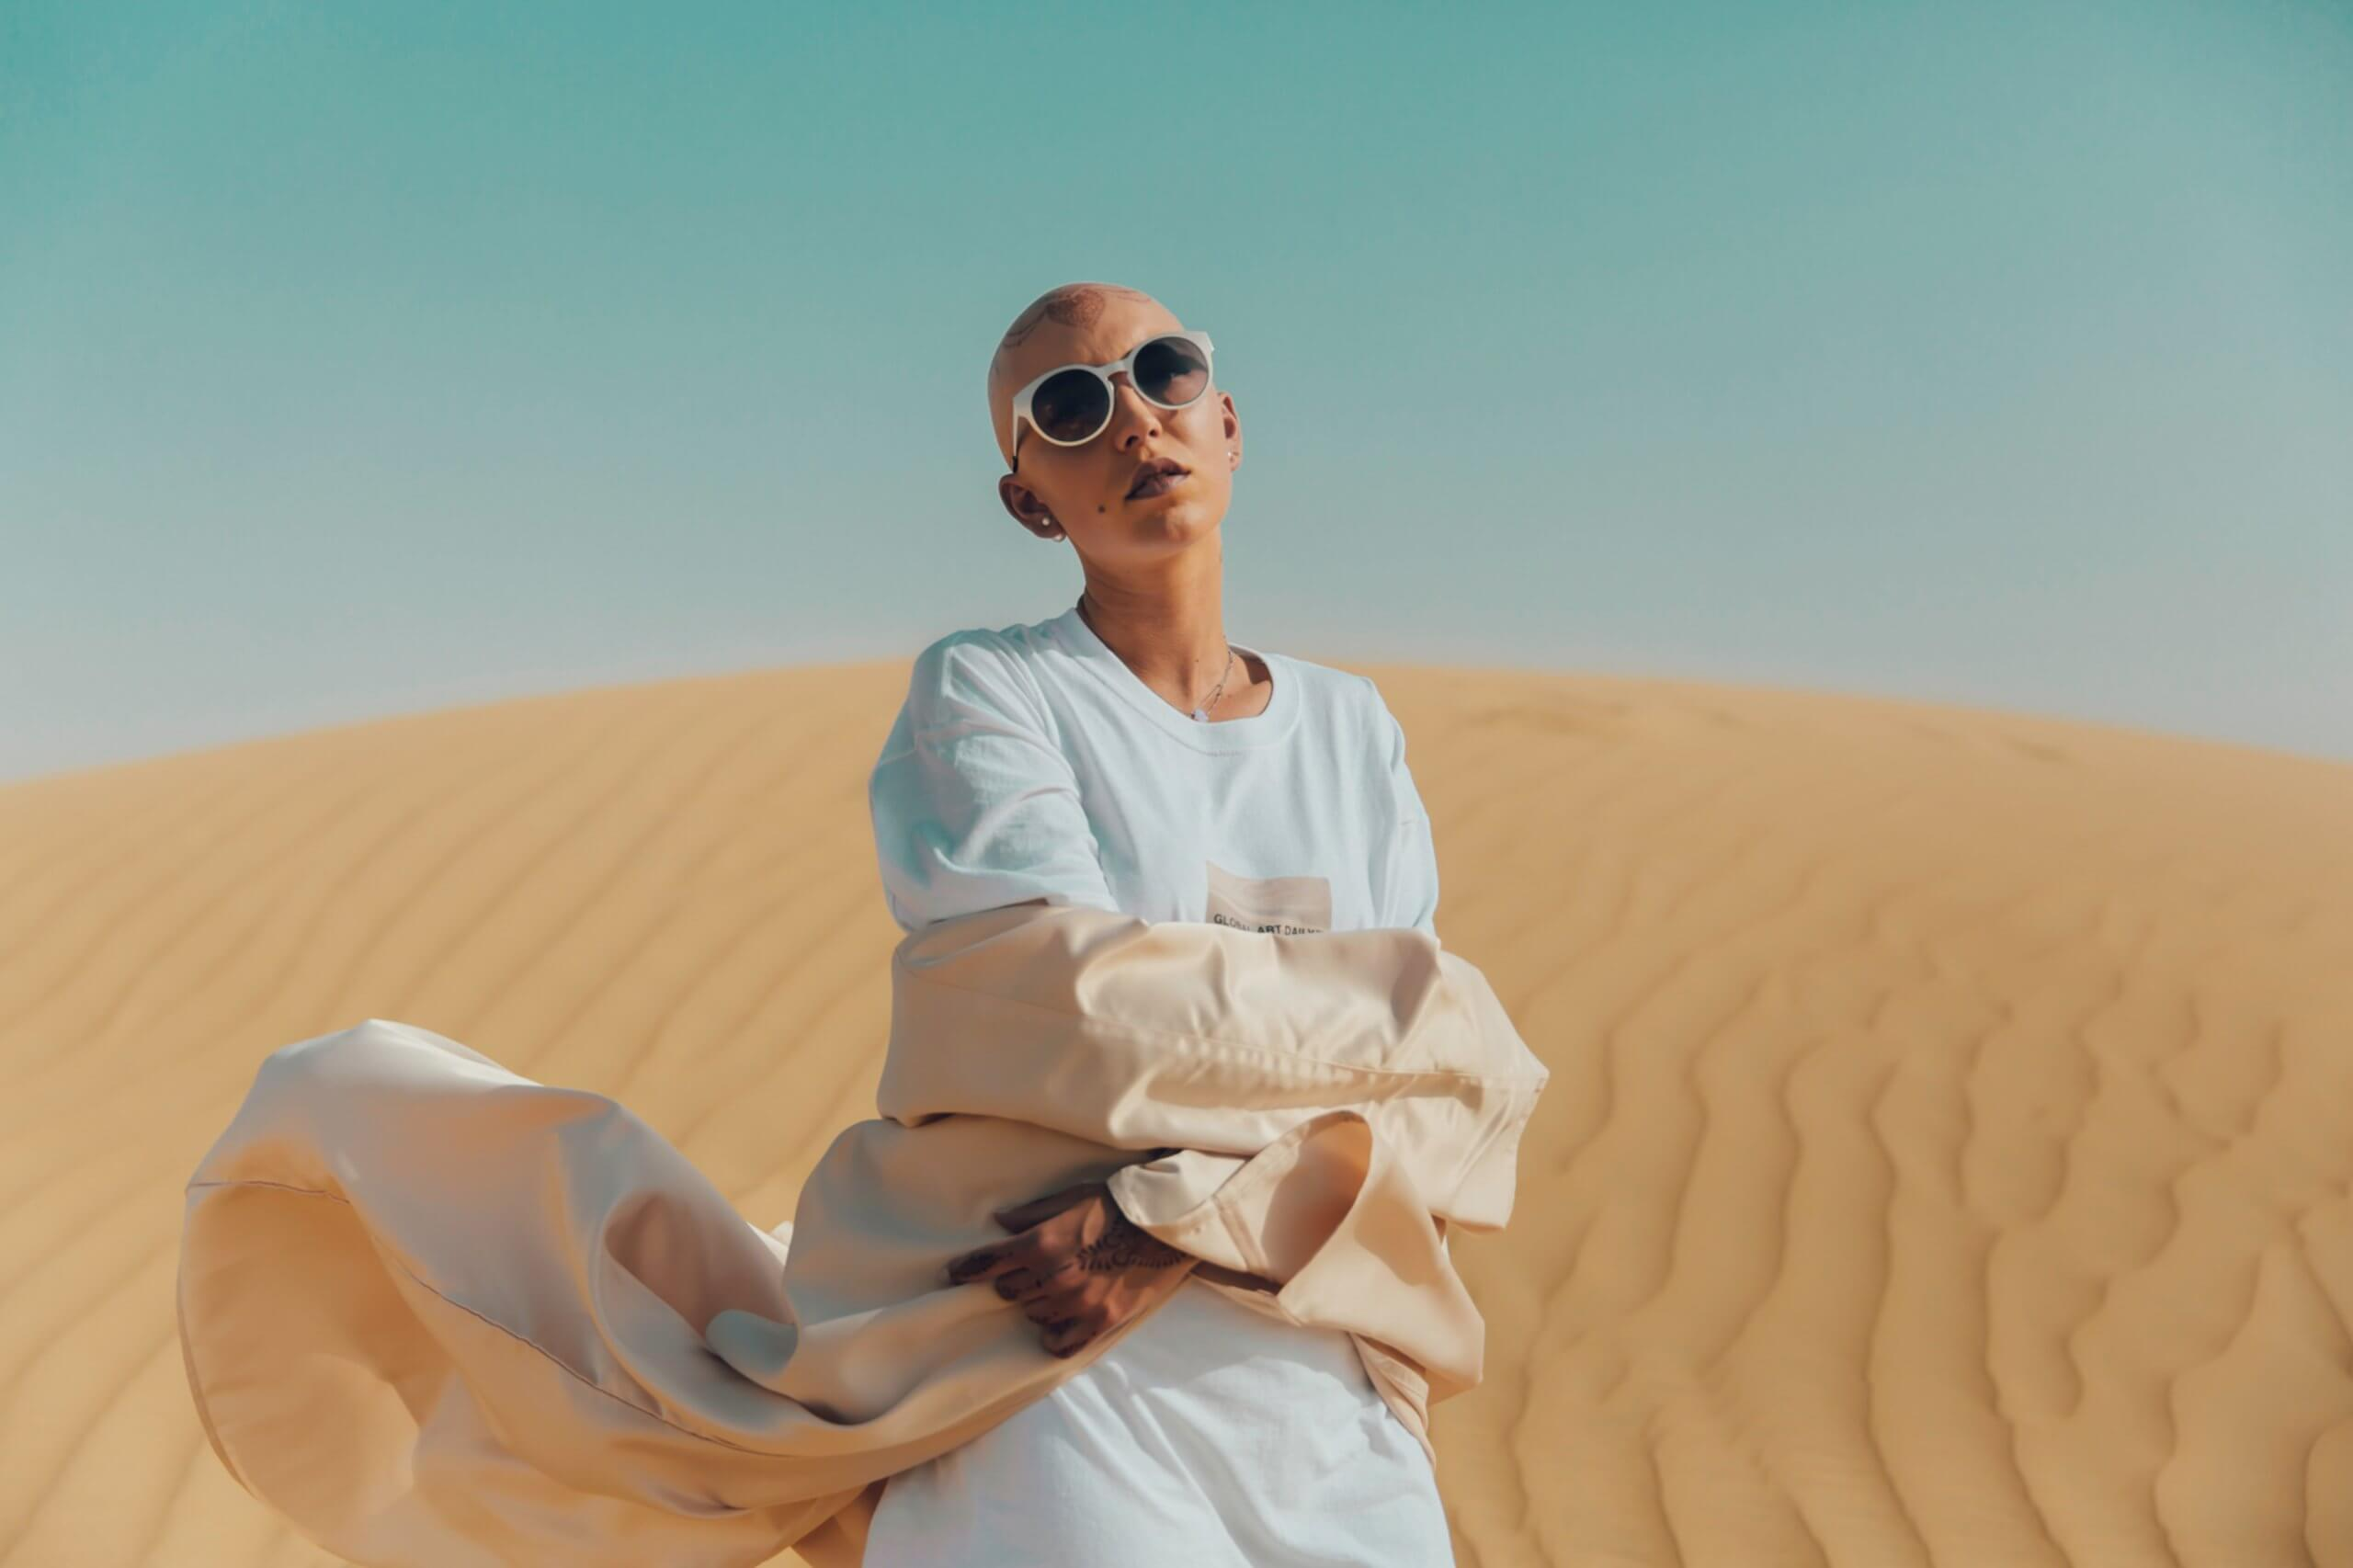 Bald woman with henna wearing flowing clothing in dessert